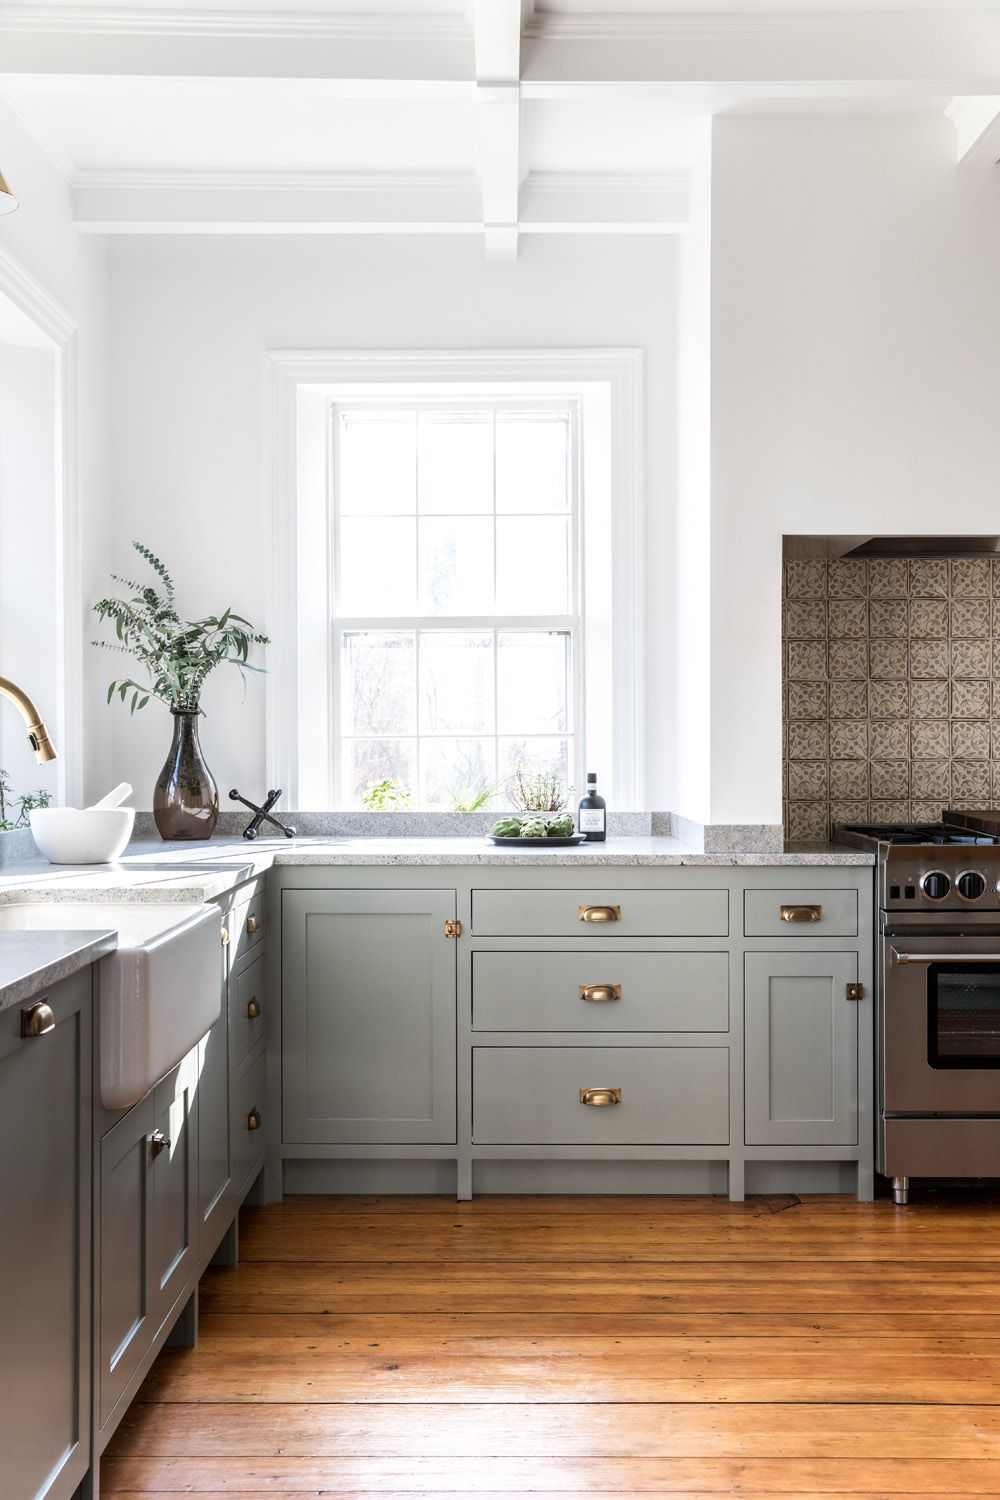 A Shaker Style Kitchen For A 30 Something Couple In Maine Rue Kitchen Decor Modern Shaker Style Kitchens Kitchen Inspirations